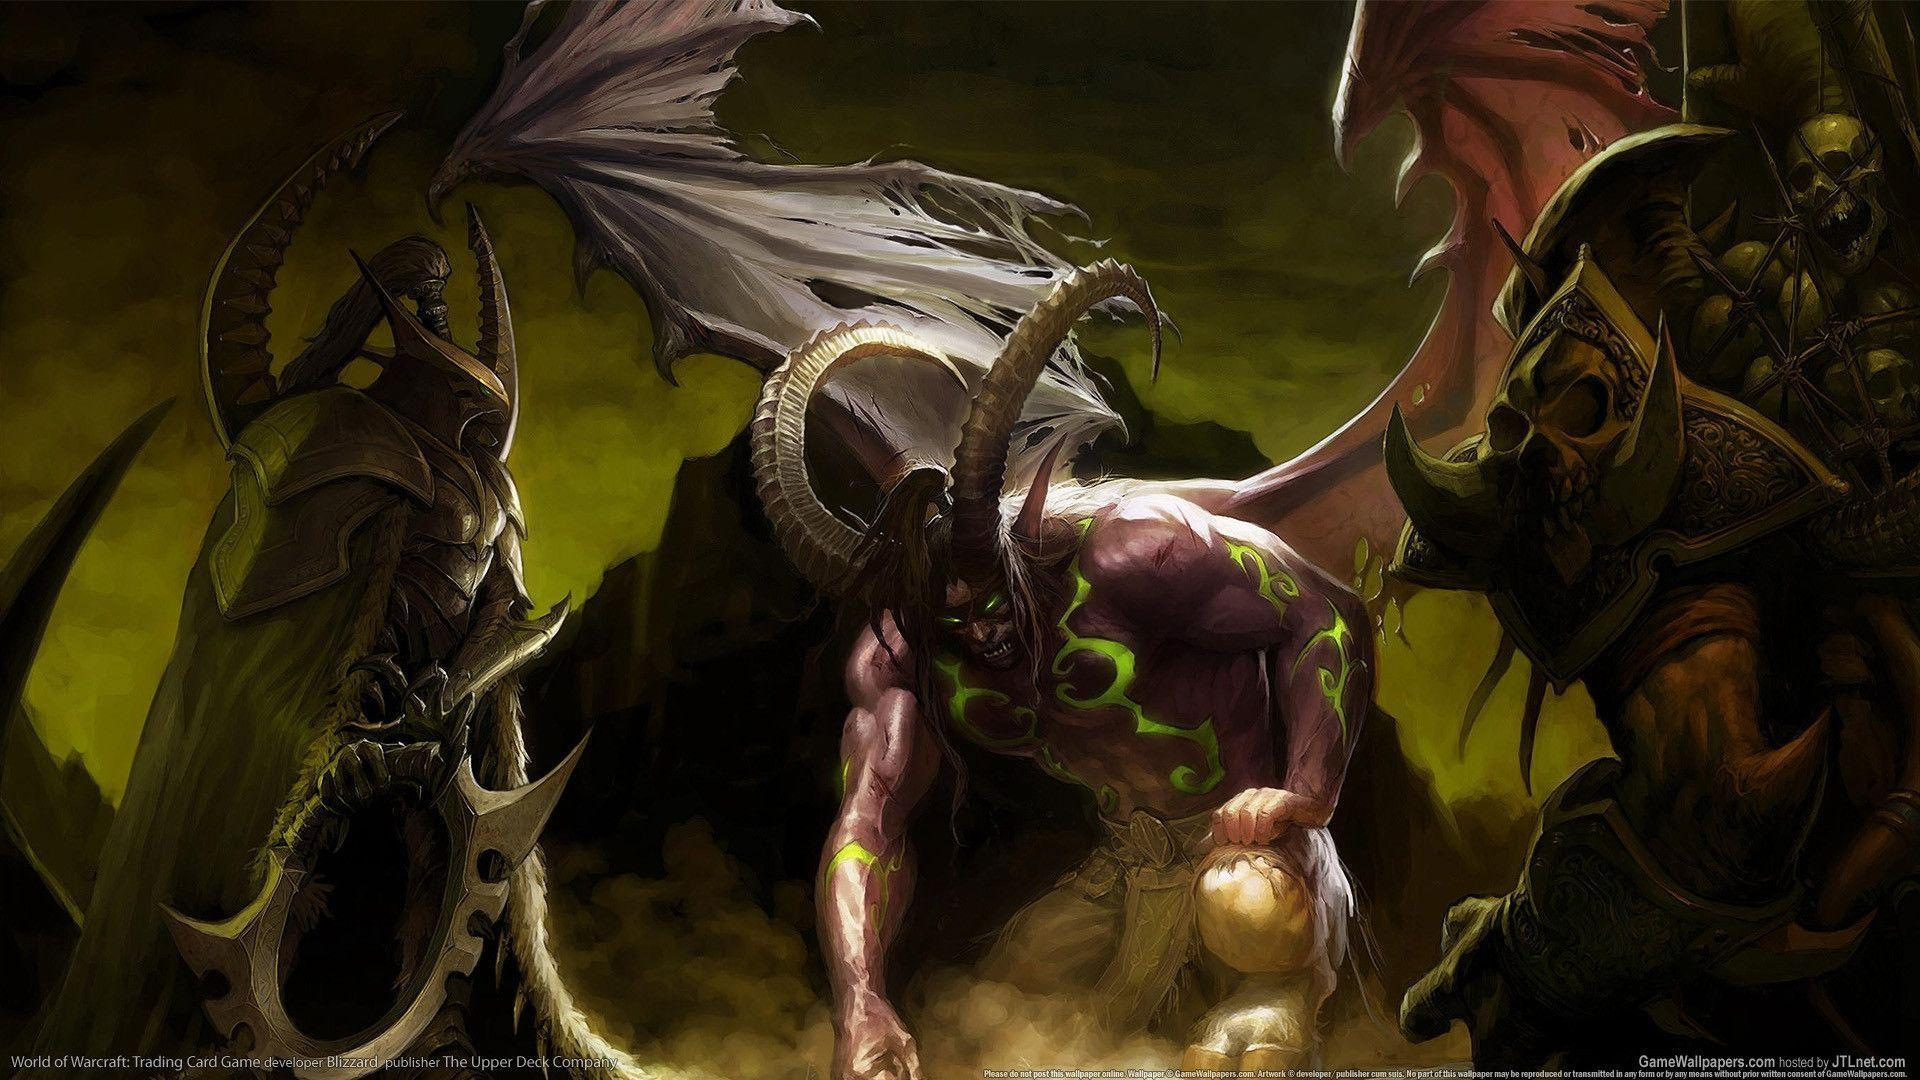 Illidan Stormrage : Desktop and mobile wallpapers : Wallippo